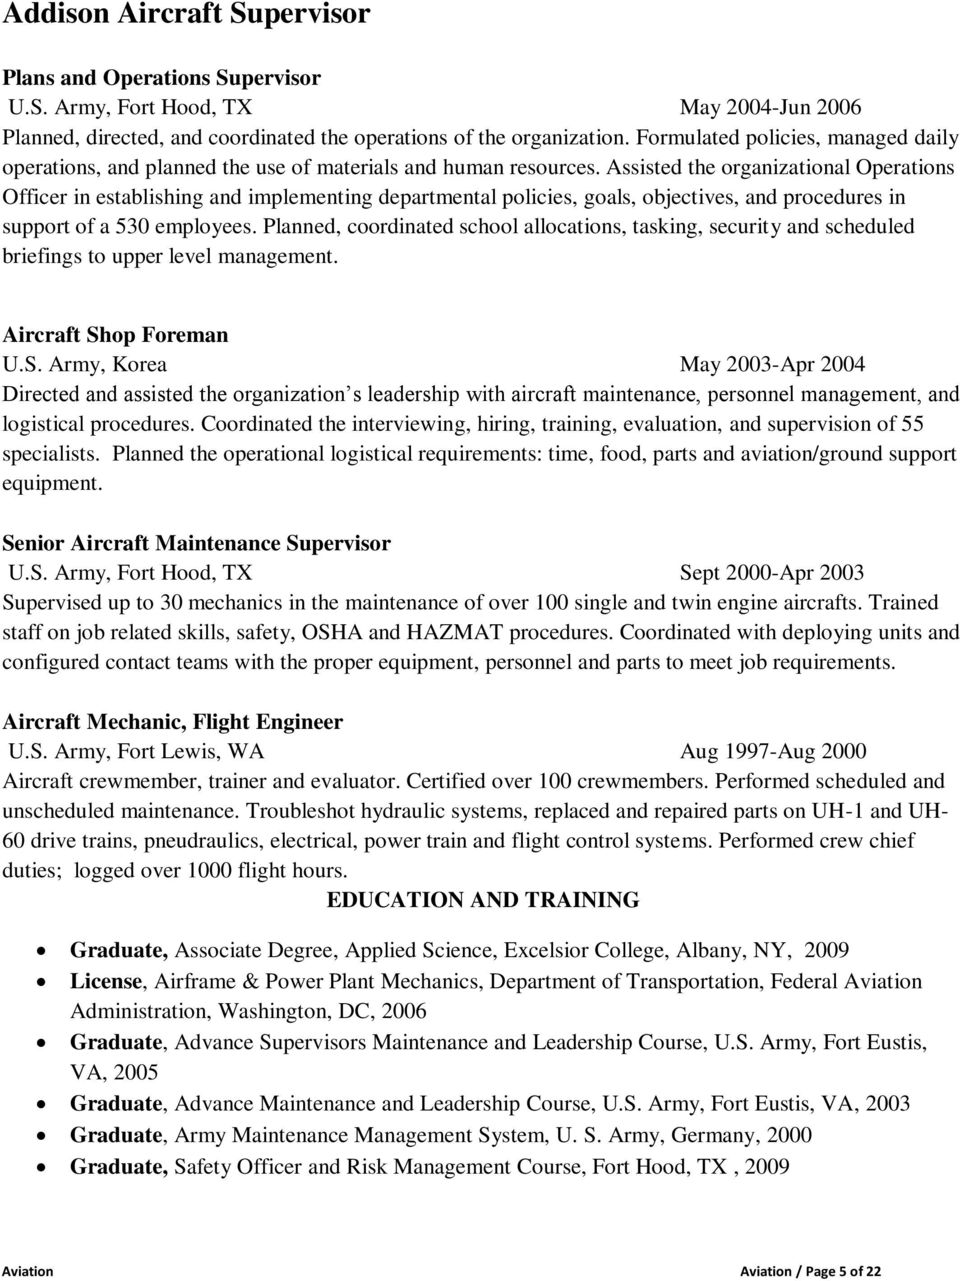 SAMPLE RESUMES FOR AVIATION - PDF